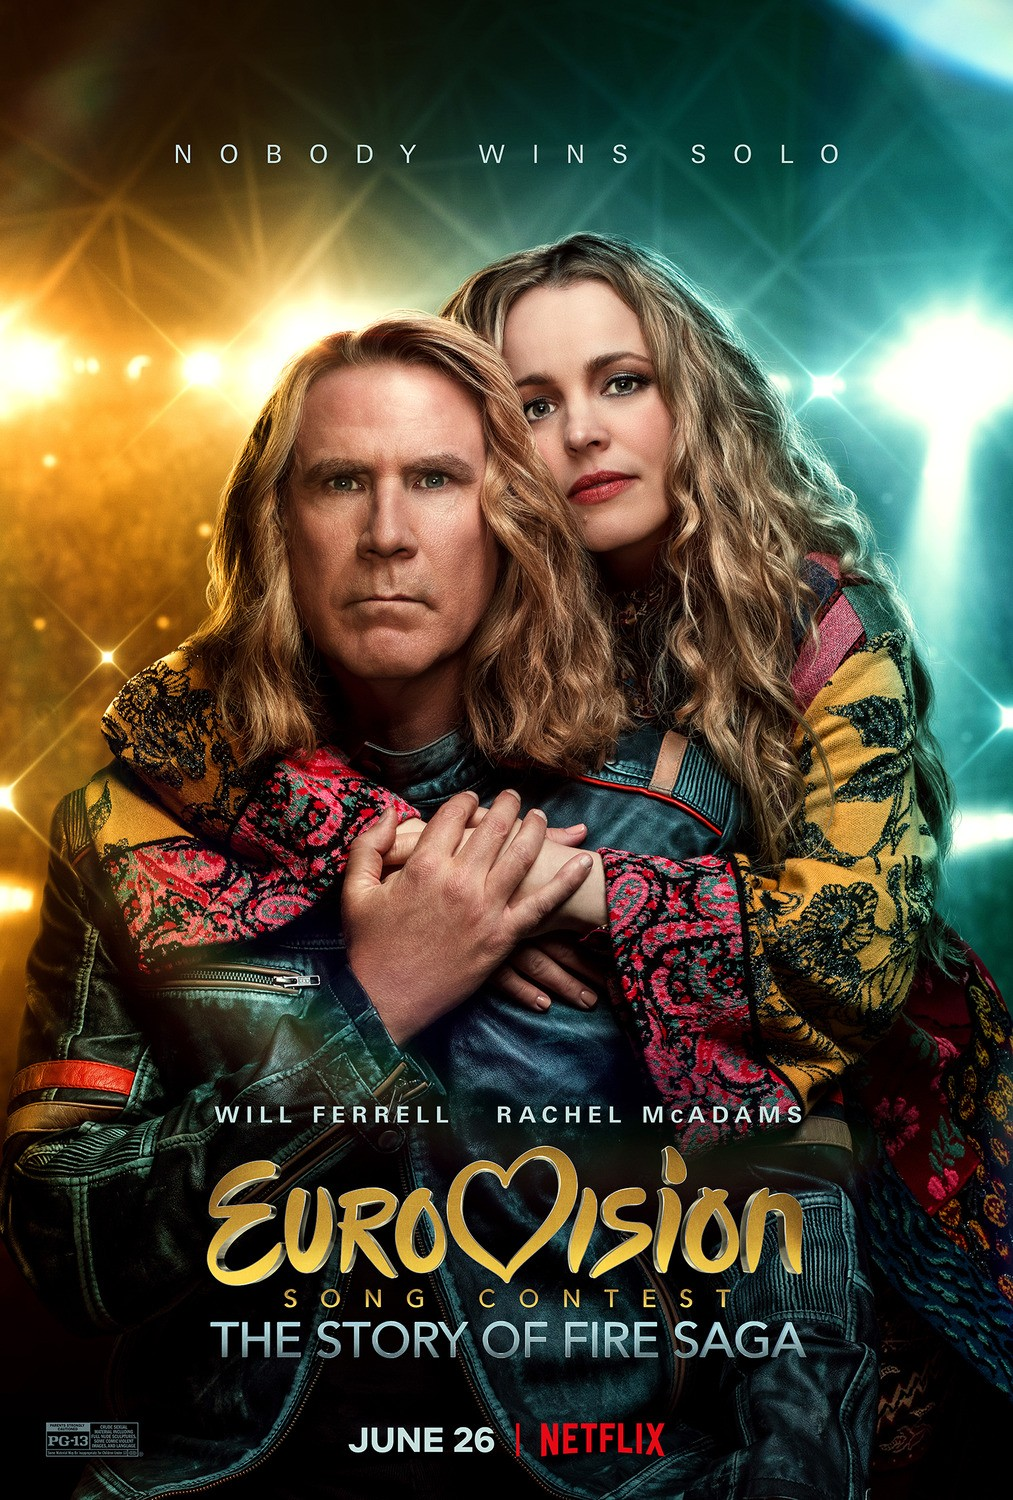 Eurovision Song Contest: The Story Of Fire Saga [HDRip] [Streaming] [Telecharger]